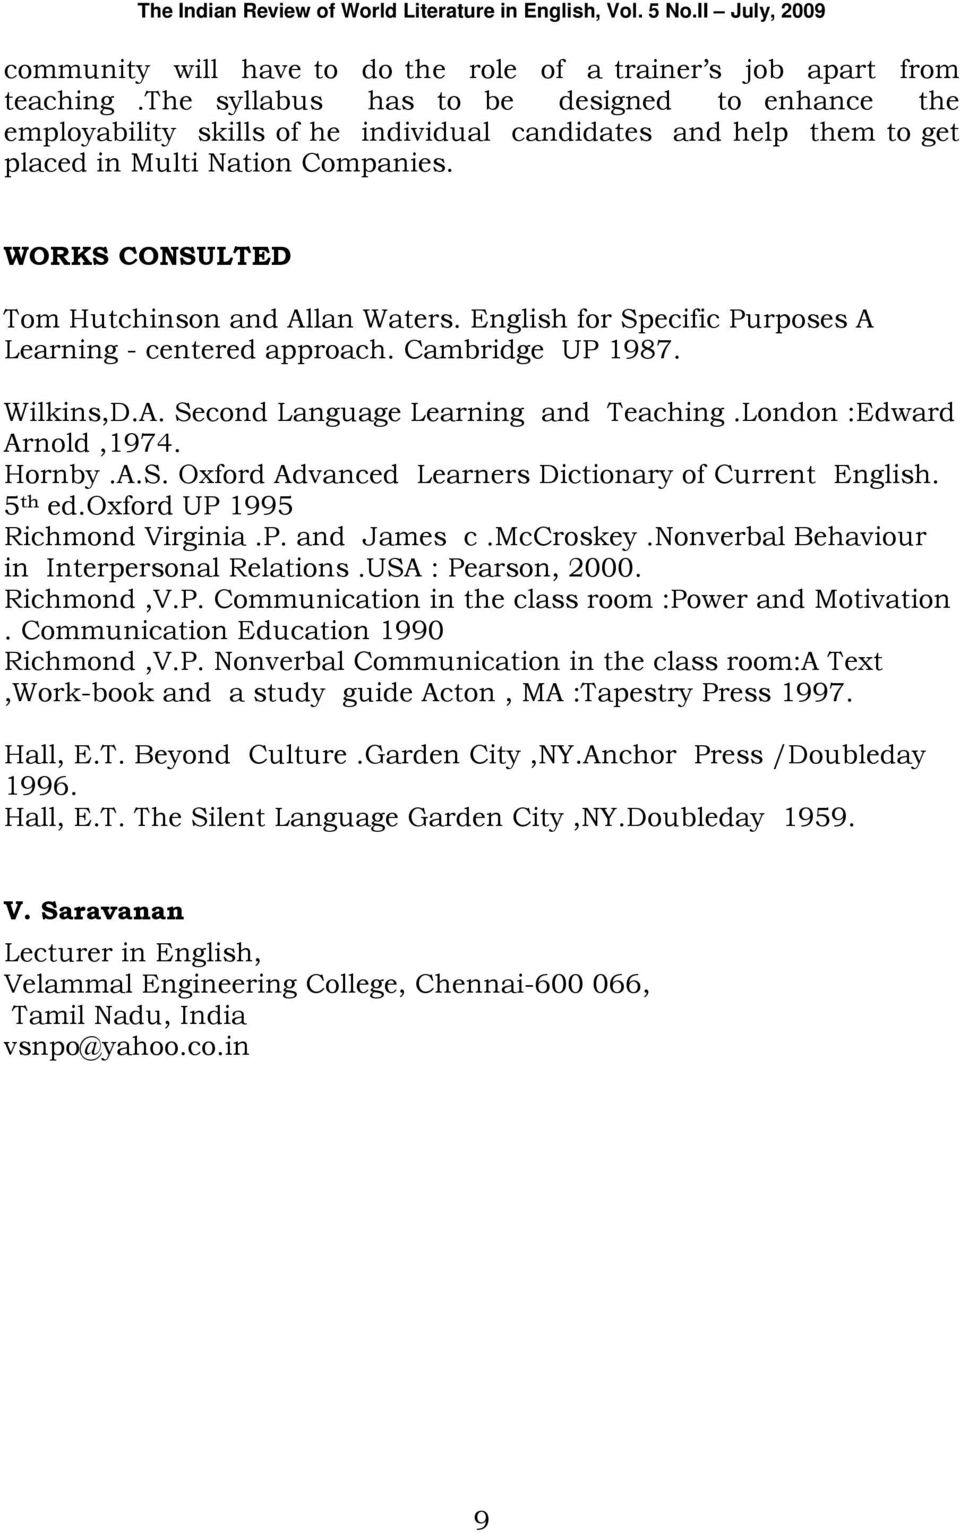 English for Specific Purposes A Learning - centered approach. Cambridge UP 1987. Wilkins,D.A. Second Language Learning and Teaching.London :Edward Arnold,1974. Hornby.A.S. Oxford Advanced Learners Dictionary of Current English.